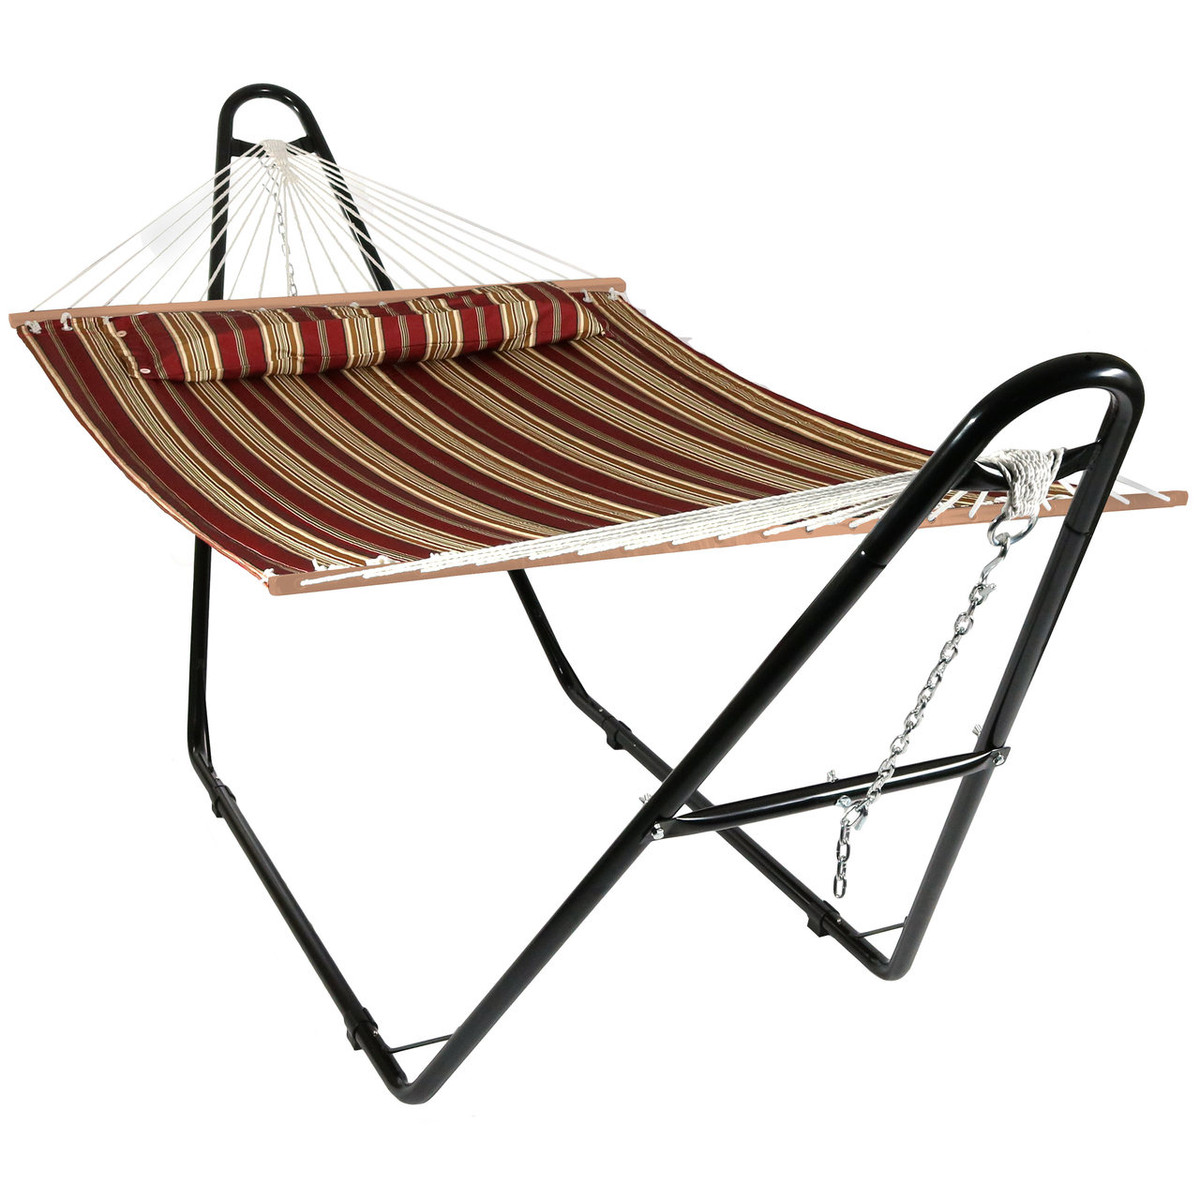 two person hammock with stand. Sunnydaze Quilted Double Fabric 2-Person Hammock With Multi-Use Universal Steel Stand, Red Stripe, 440 Pound Capacity Two Person Stand